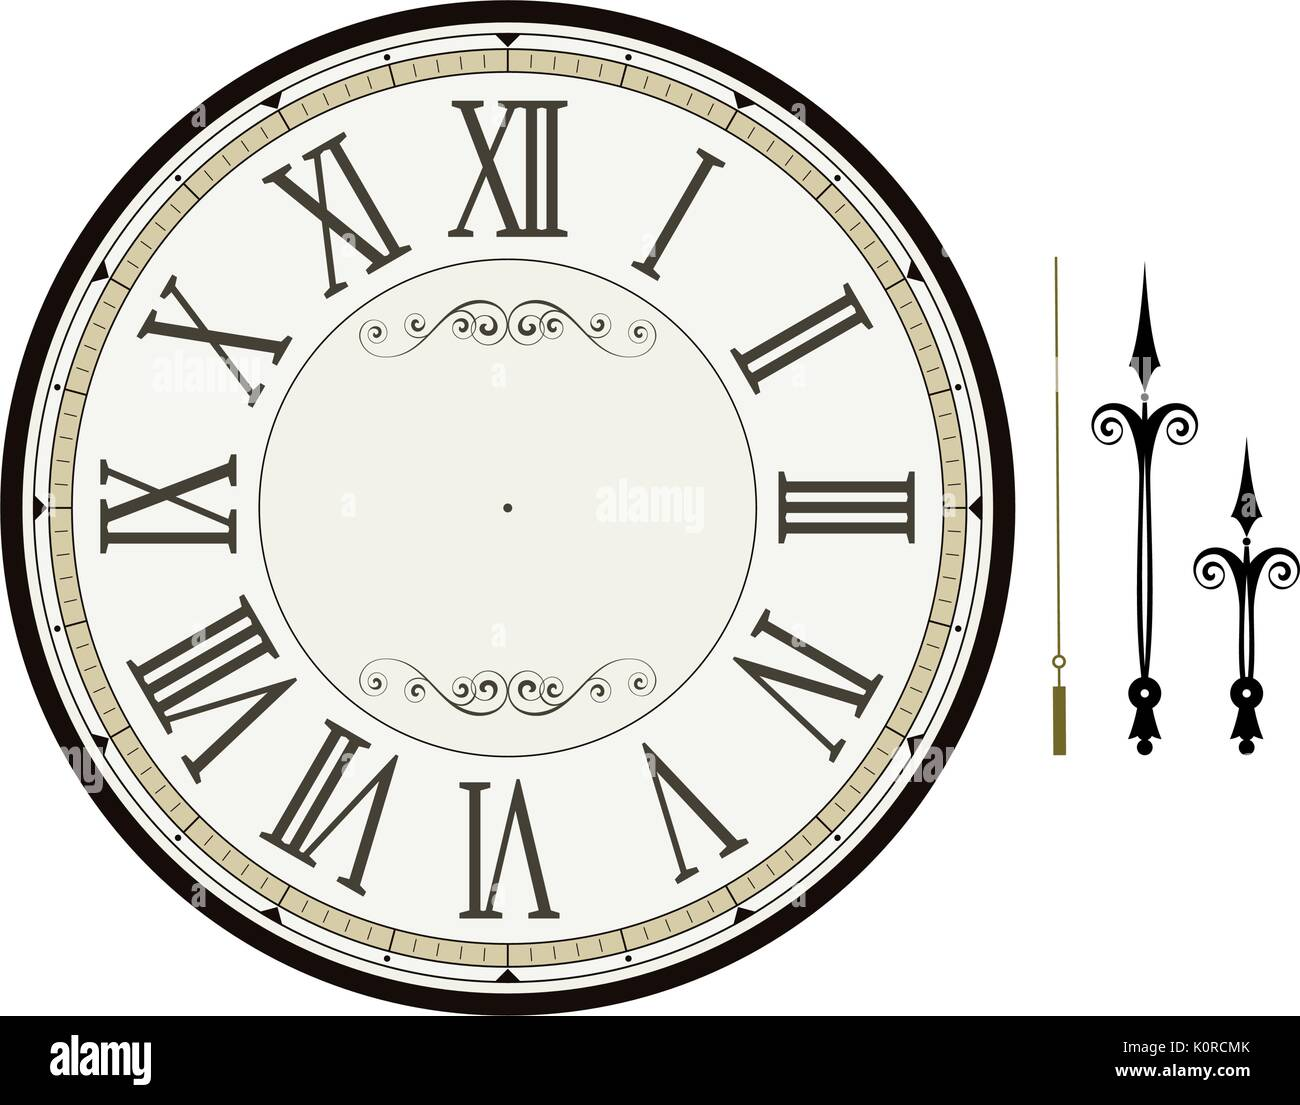 worksheet Clock Face Template vintage clock face template with hour minute and second hands to stock vector make your own time isolated on white background